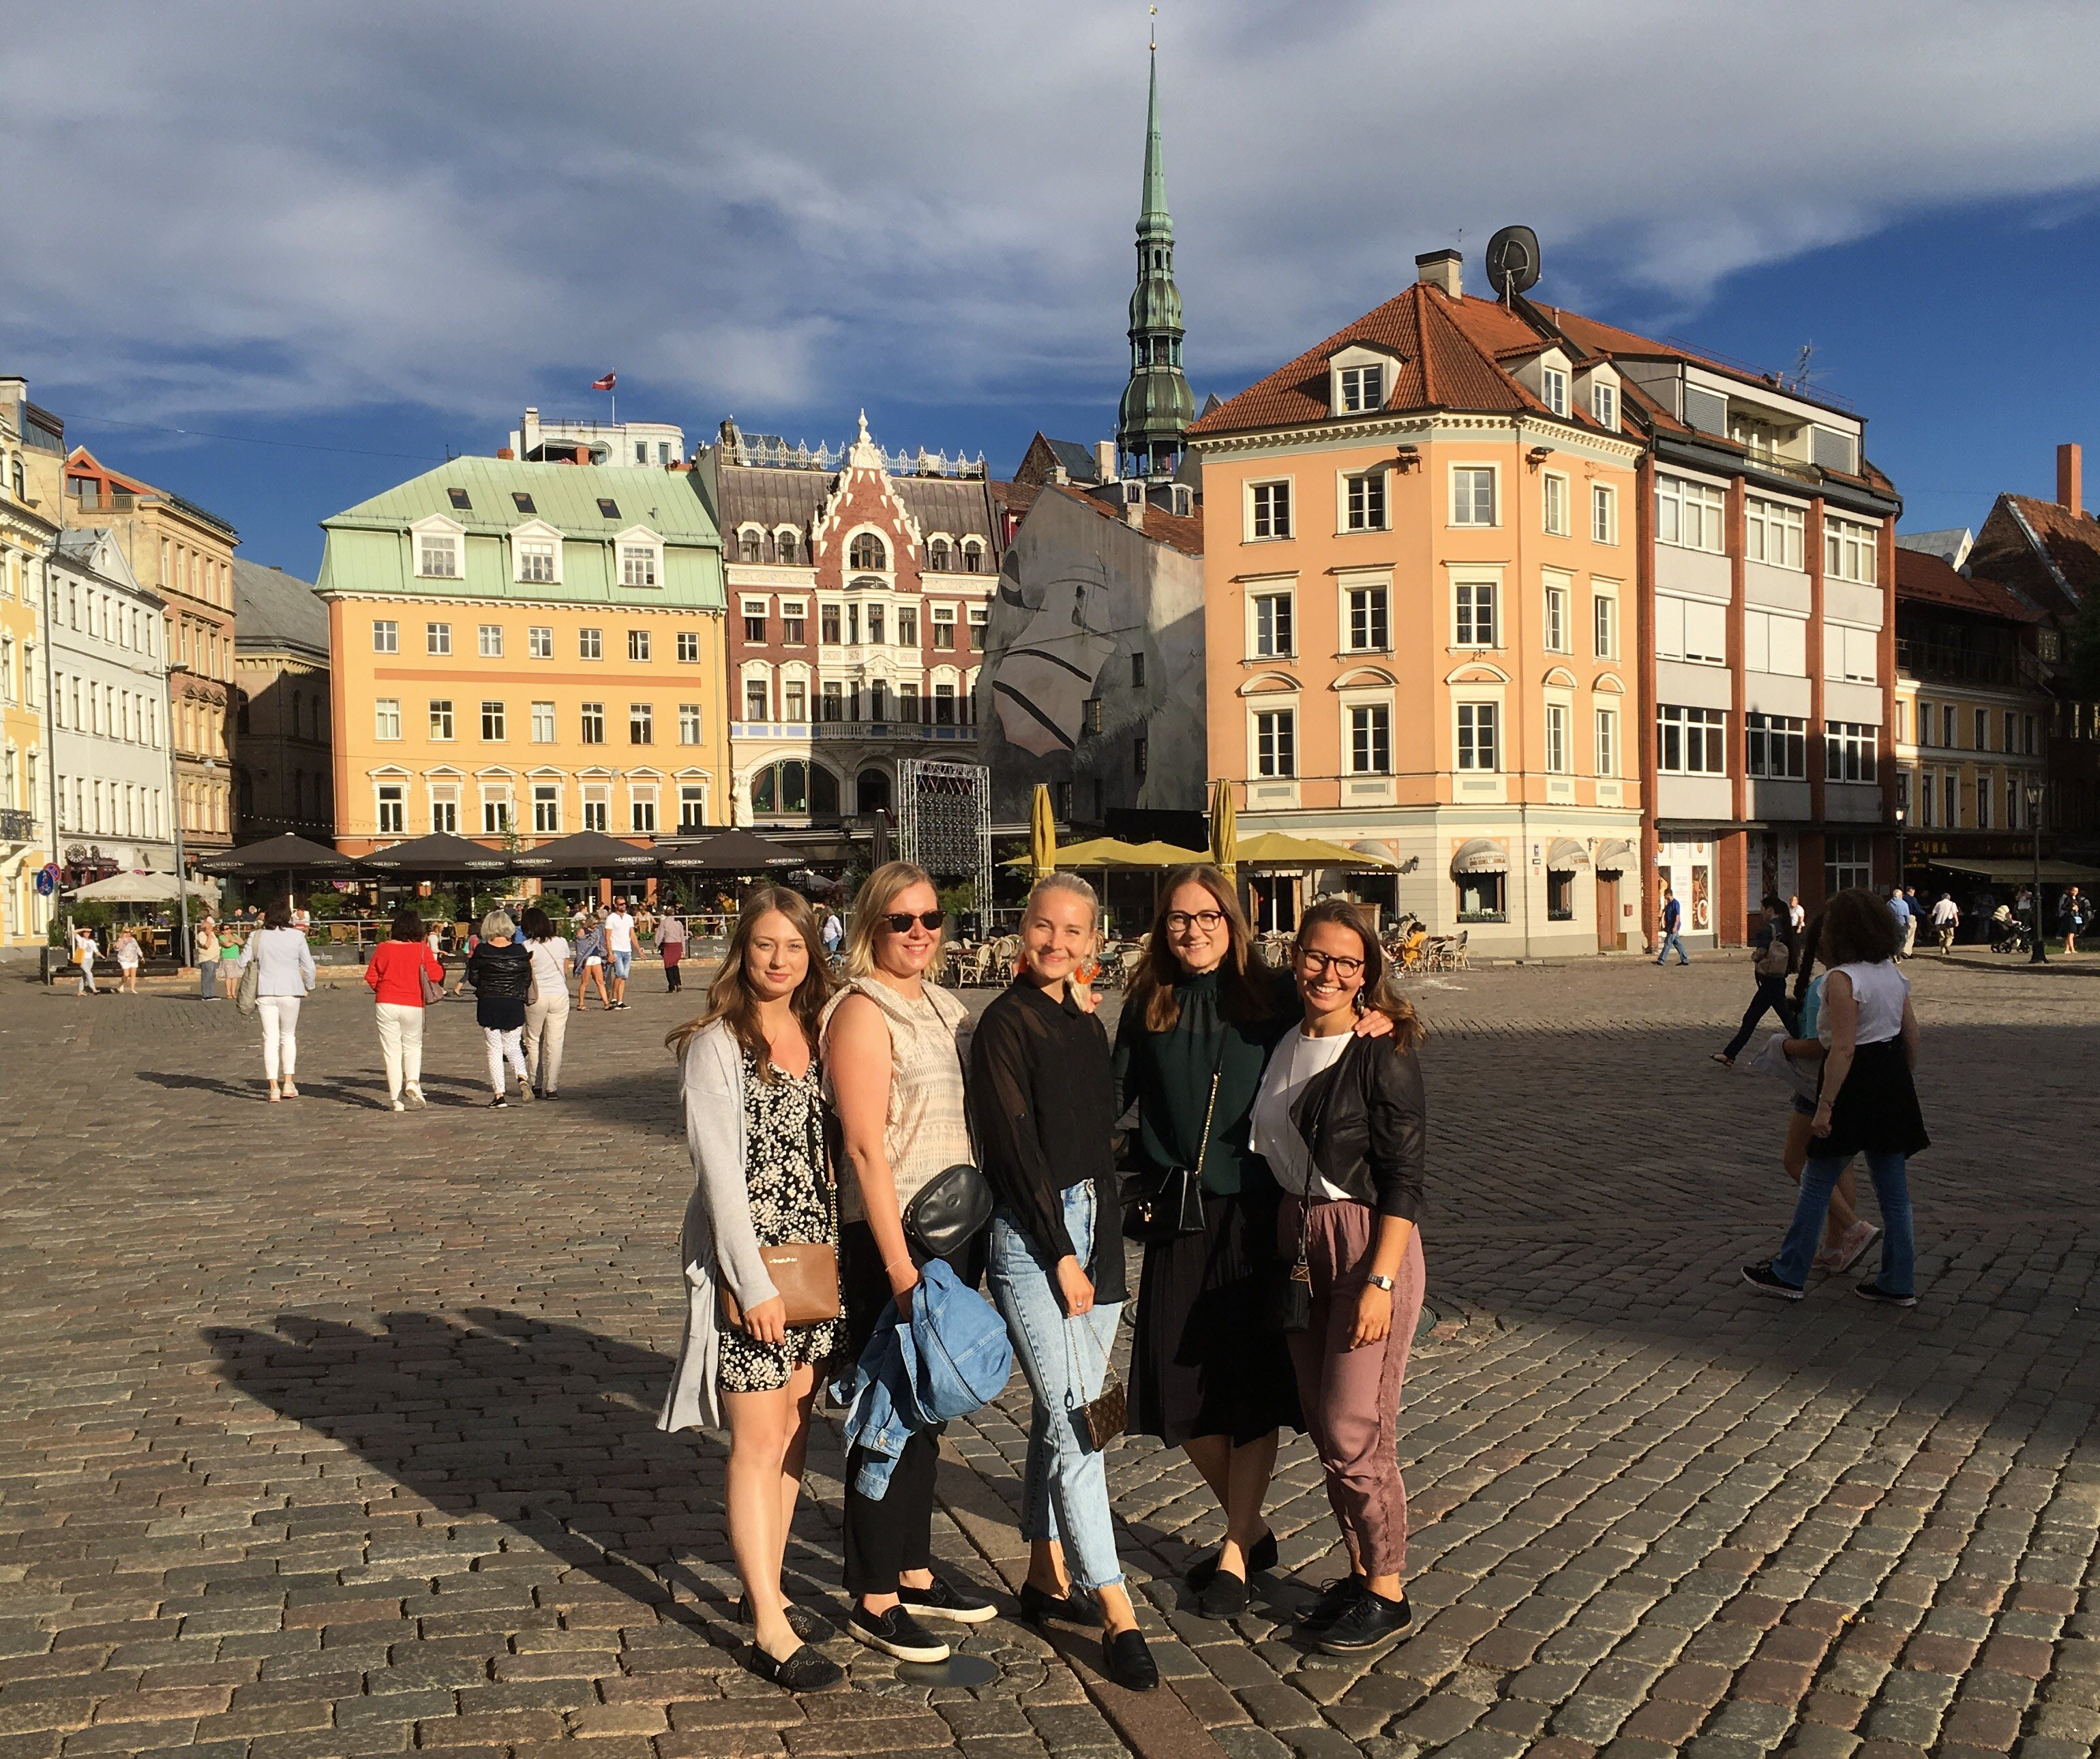 Heidi (left), Katja, Noora, Mari and Sanna's first evening in Riga